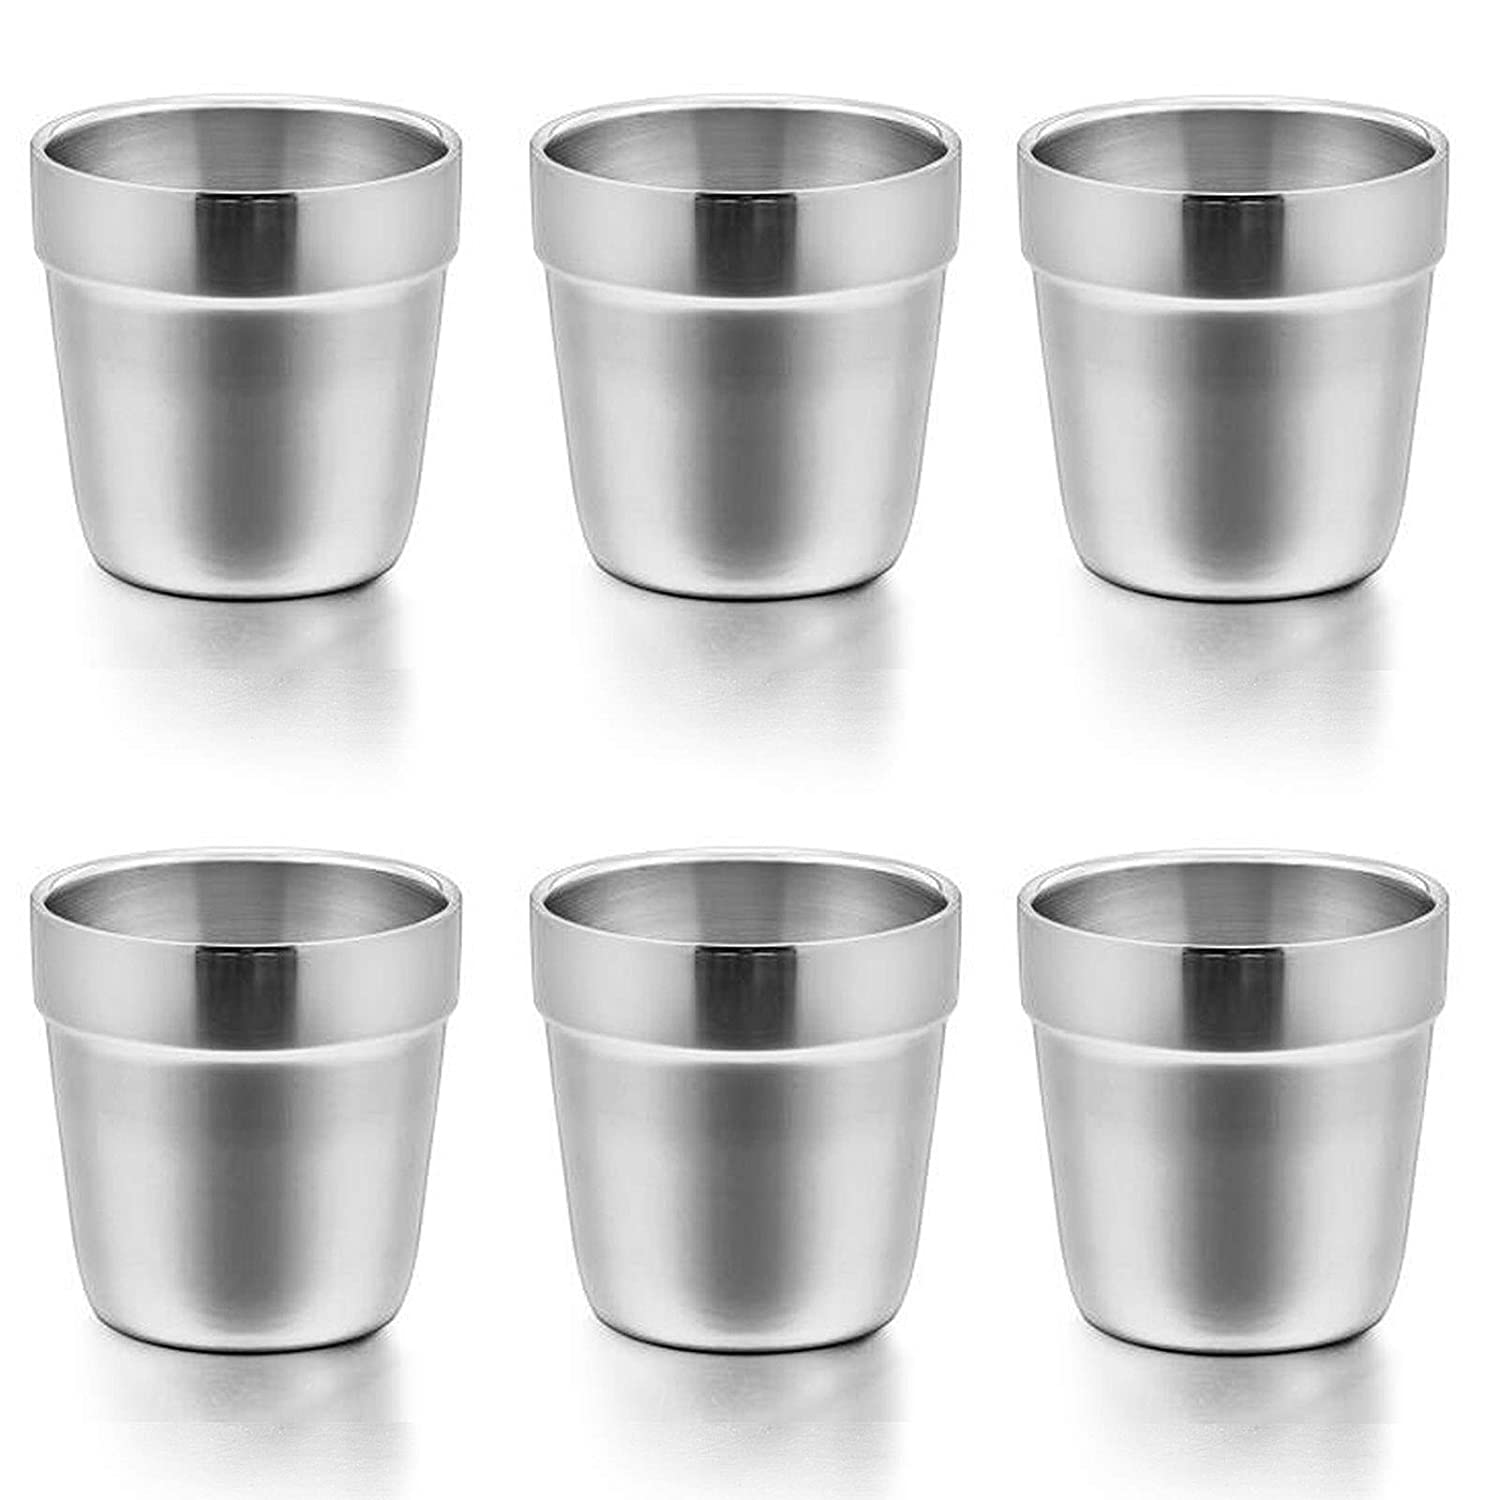 Cups for Toddlers Kids, E-far 6 Ounce Stainless Steel Insulated Tumblers for Children Preschoolers, Training & Transition, Double Wall & Shatterproof, Mirror Polished & Dishwasher Safe - 6 Pack